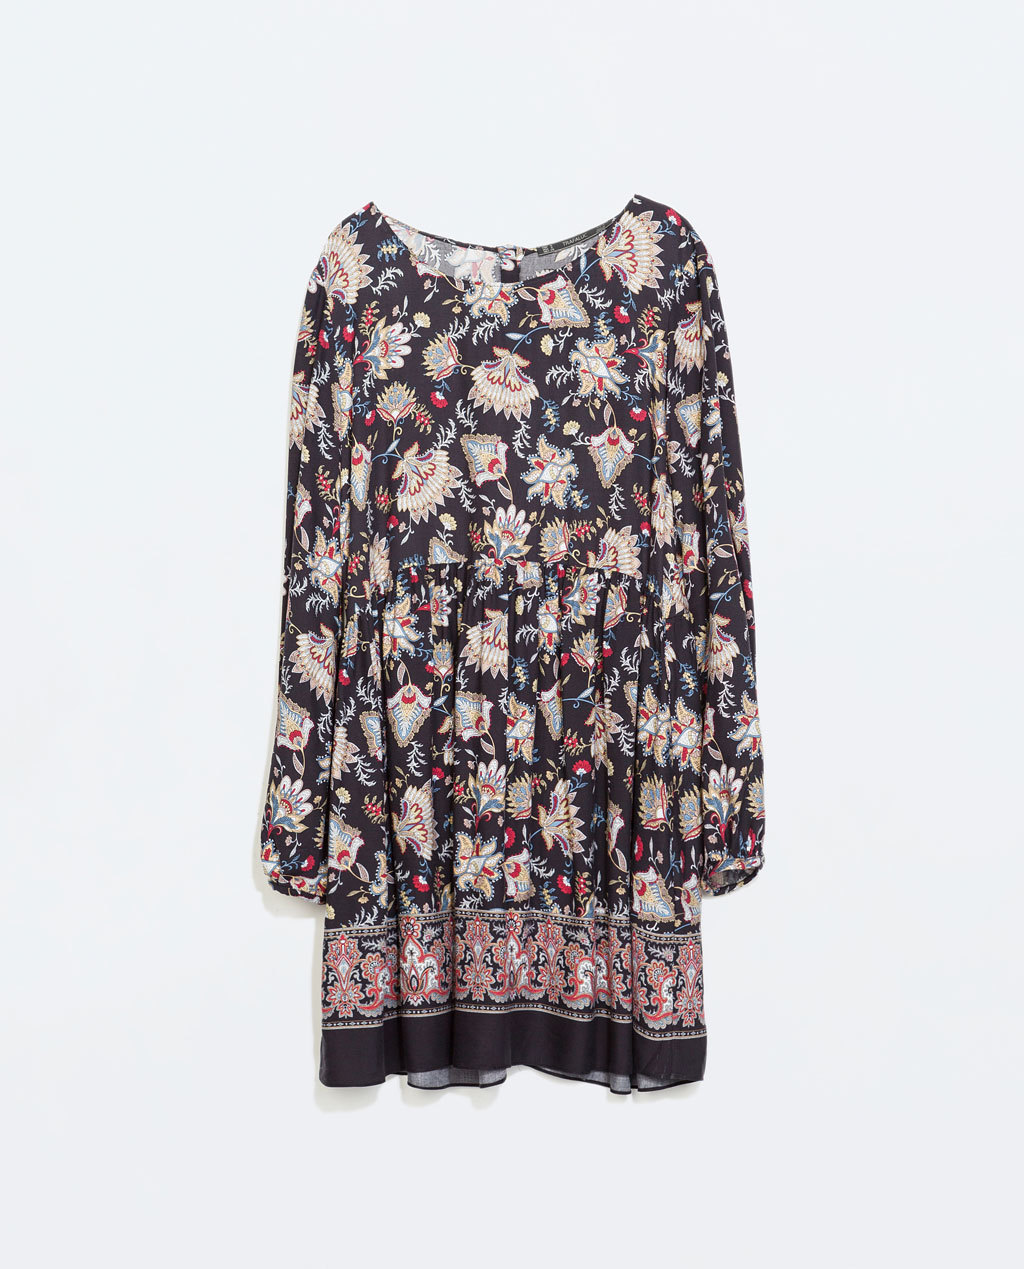 Printed Dress - style: tunic; neckline: round neck; fit: loose; occasions: casual, creative work; length: just above the knee; fibres: viscose/rayon - 100%; predominant colour: multicoloured; sleeve length: long sleeve; sleeve style: standard; texture group: cotton feel fabrics; pattern type: fabric; pattern size: big & busy; pattern: florals; season: a/w 2014; multicoloured: multicoloured